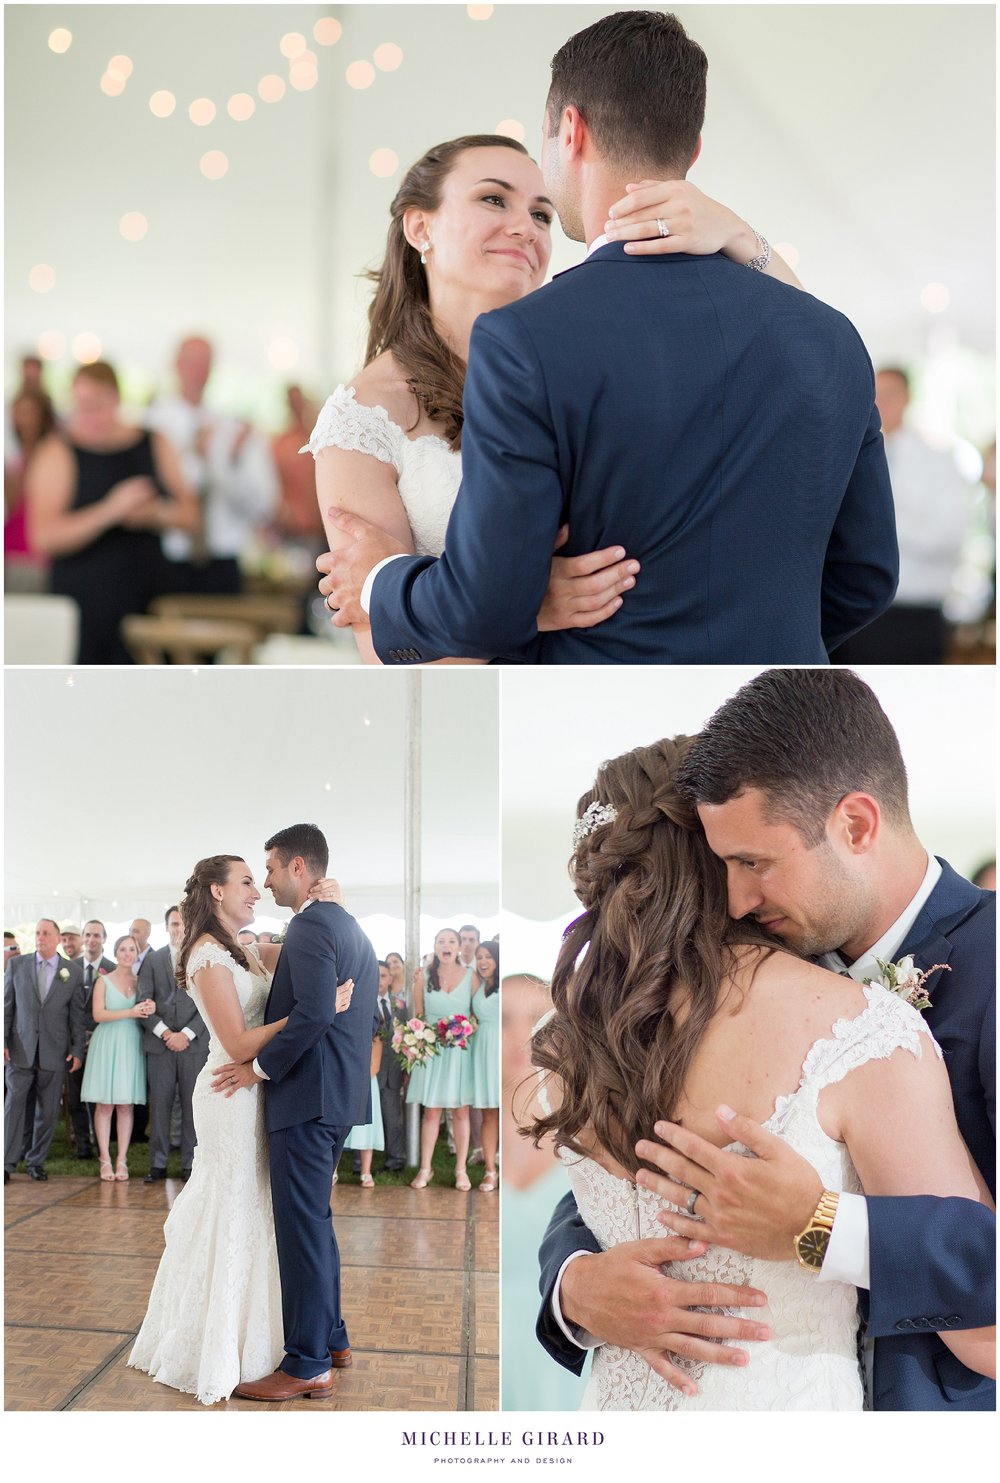 LakesideHomeWedding_BerkshiresTentReception_MichelleGirardPhotography086.jpg